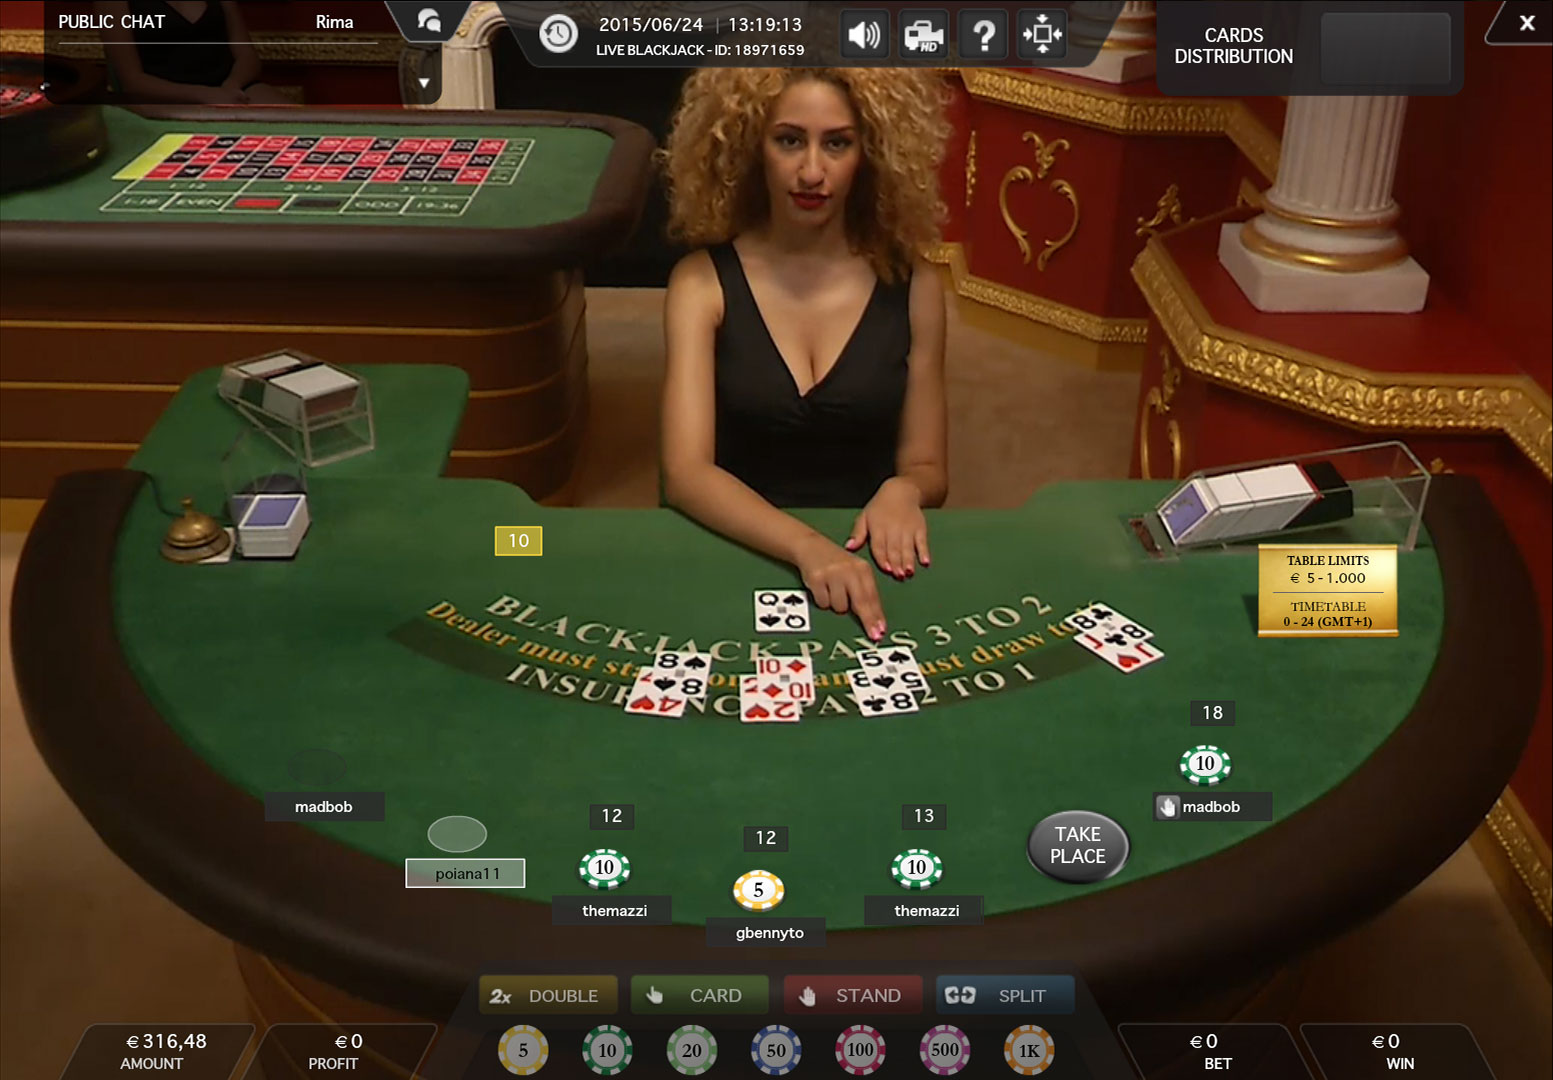 Medialive casino play roulette in a casino